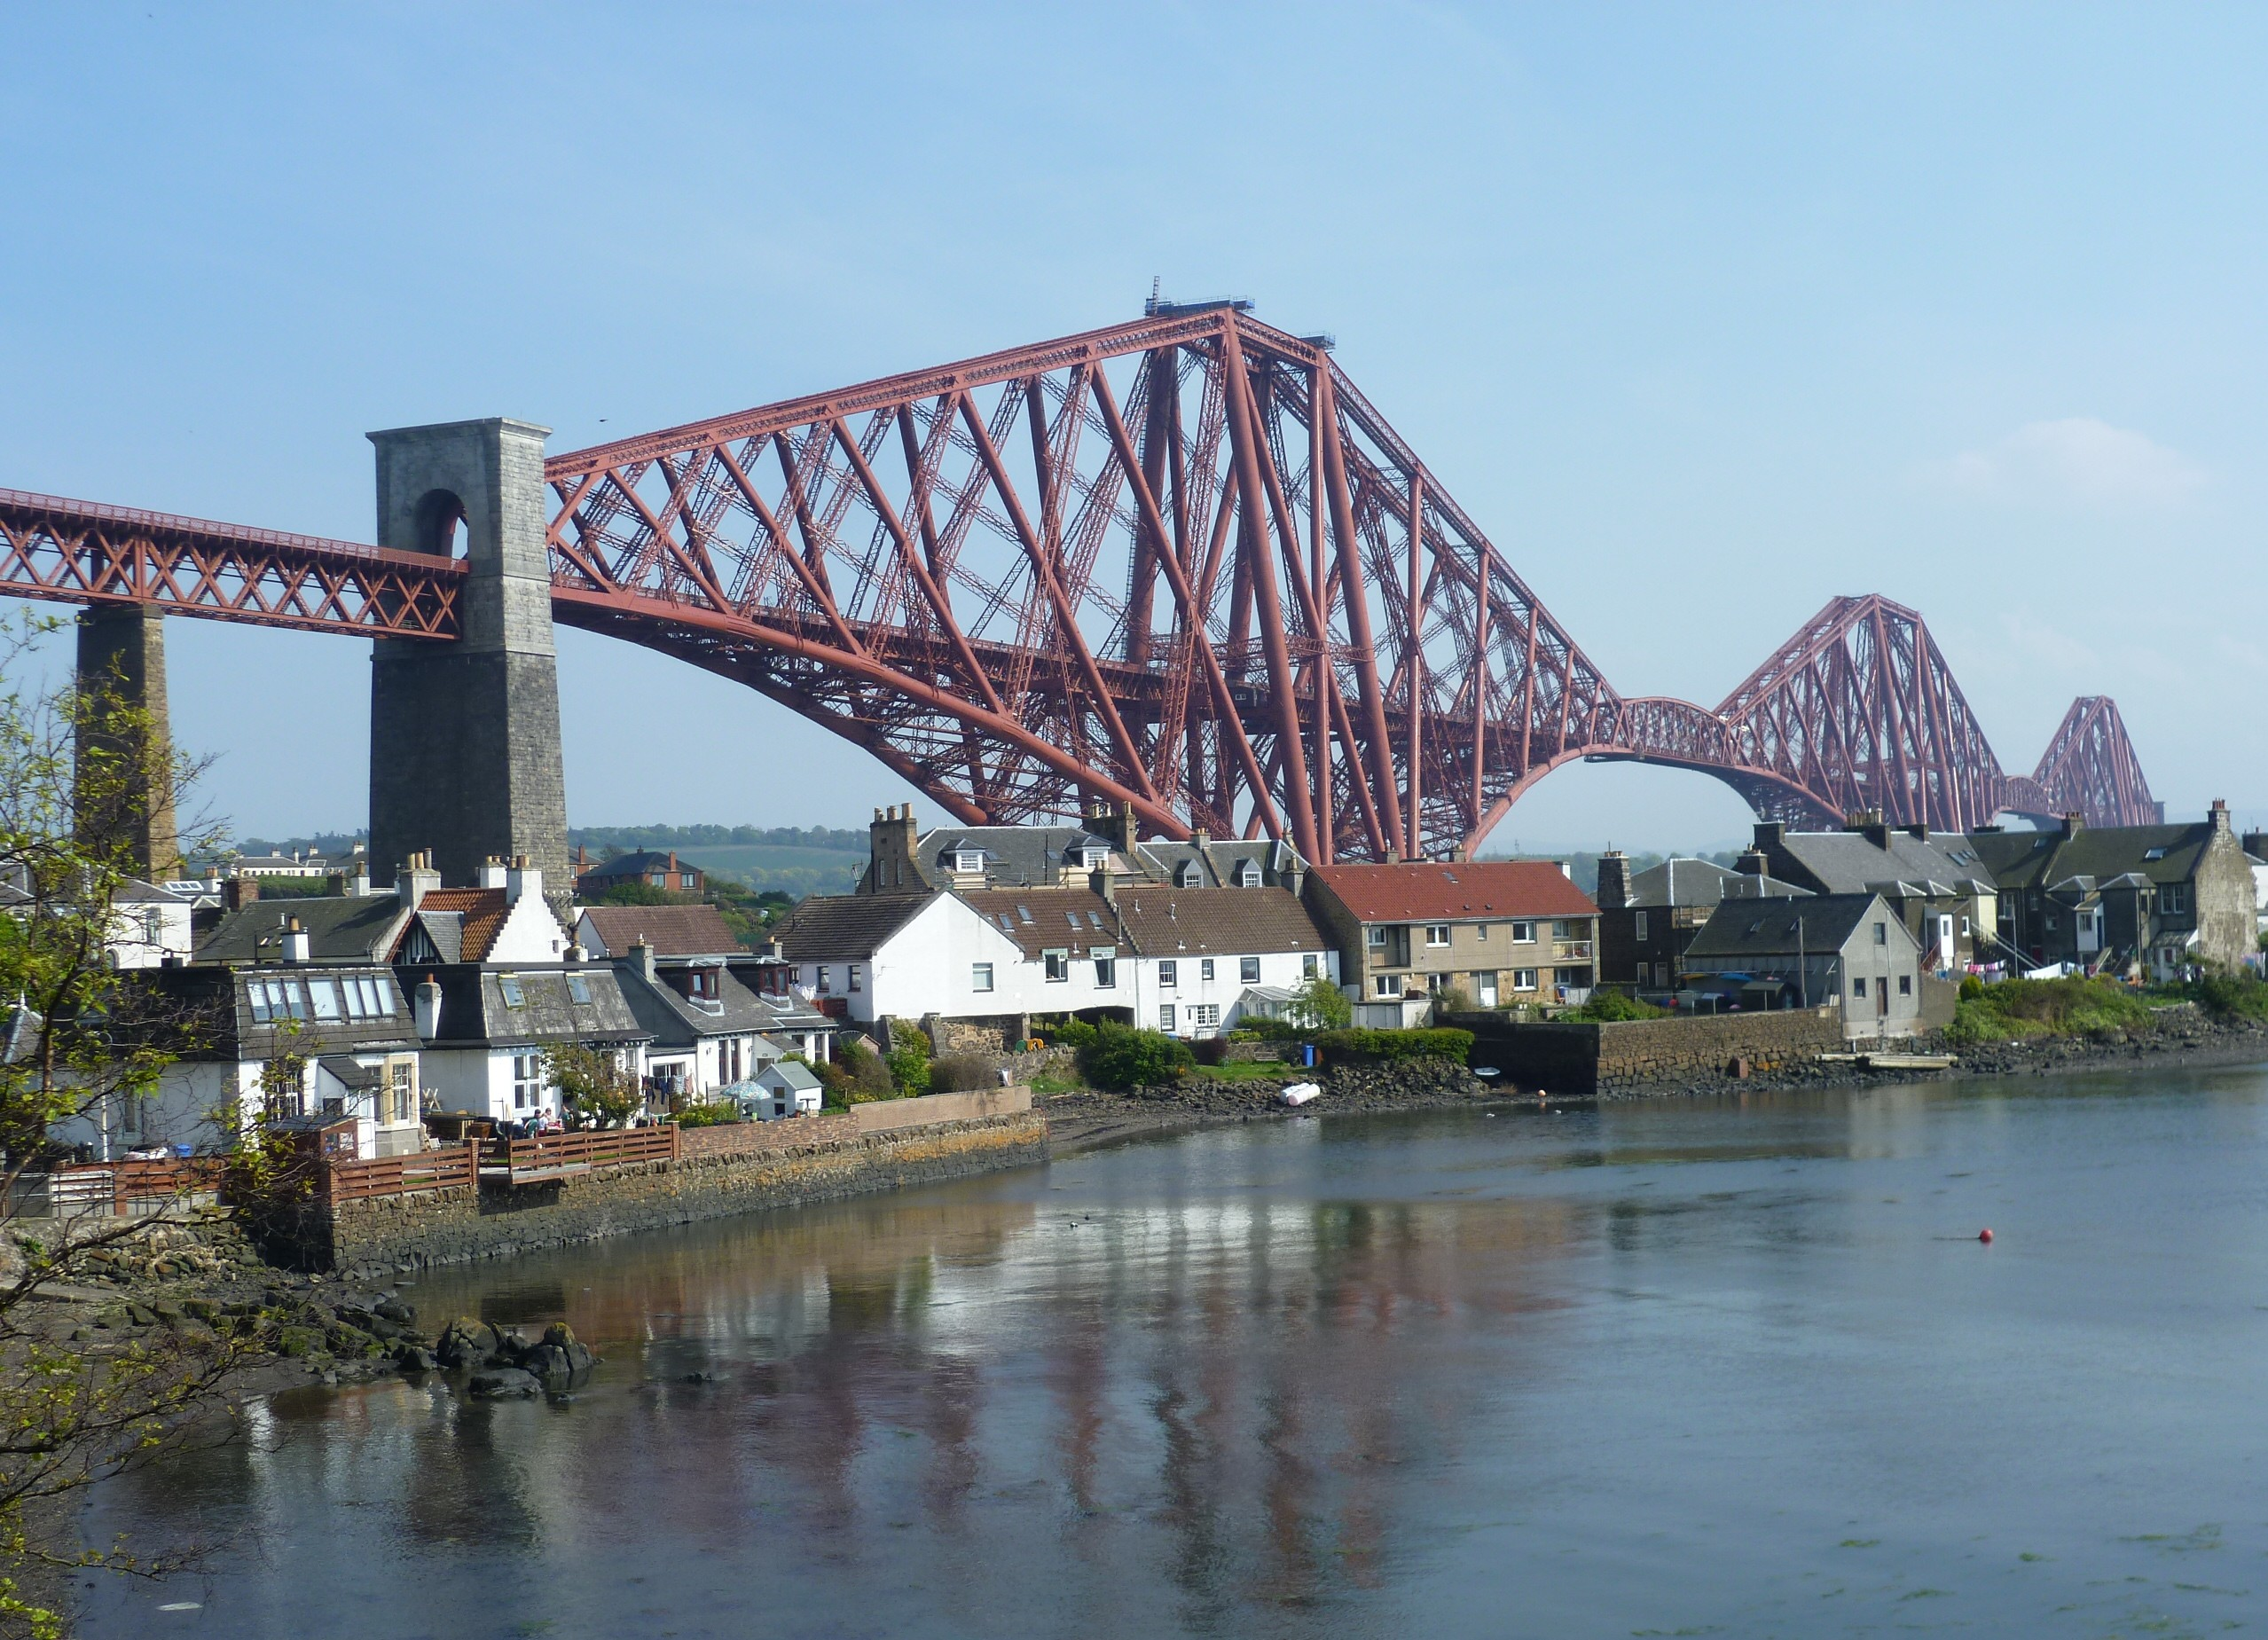 Queensferry United Kingdom  City new picture : Bridge, North Queensferry South Queensferry, United Kingdom